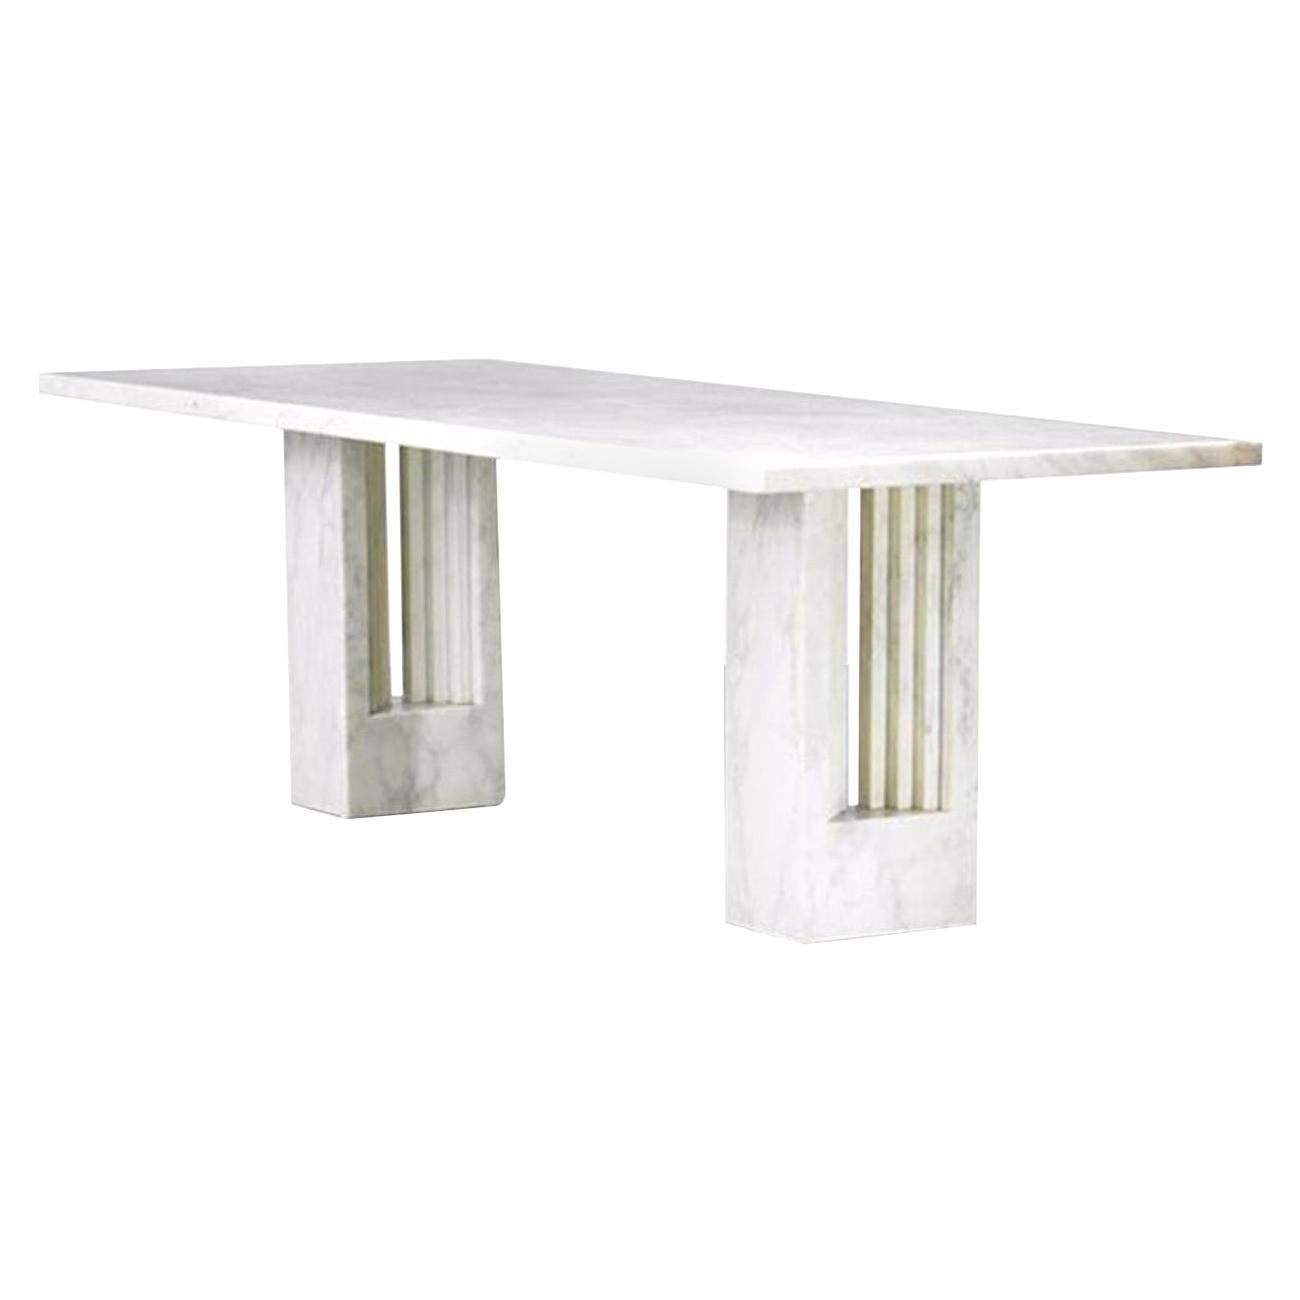 Delfi Table, Original Carrara Marble Table by Carlo Scarpa, 1970s